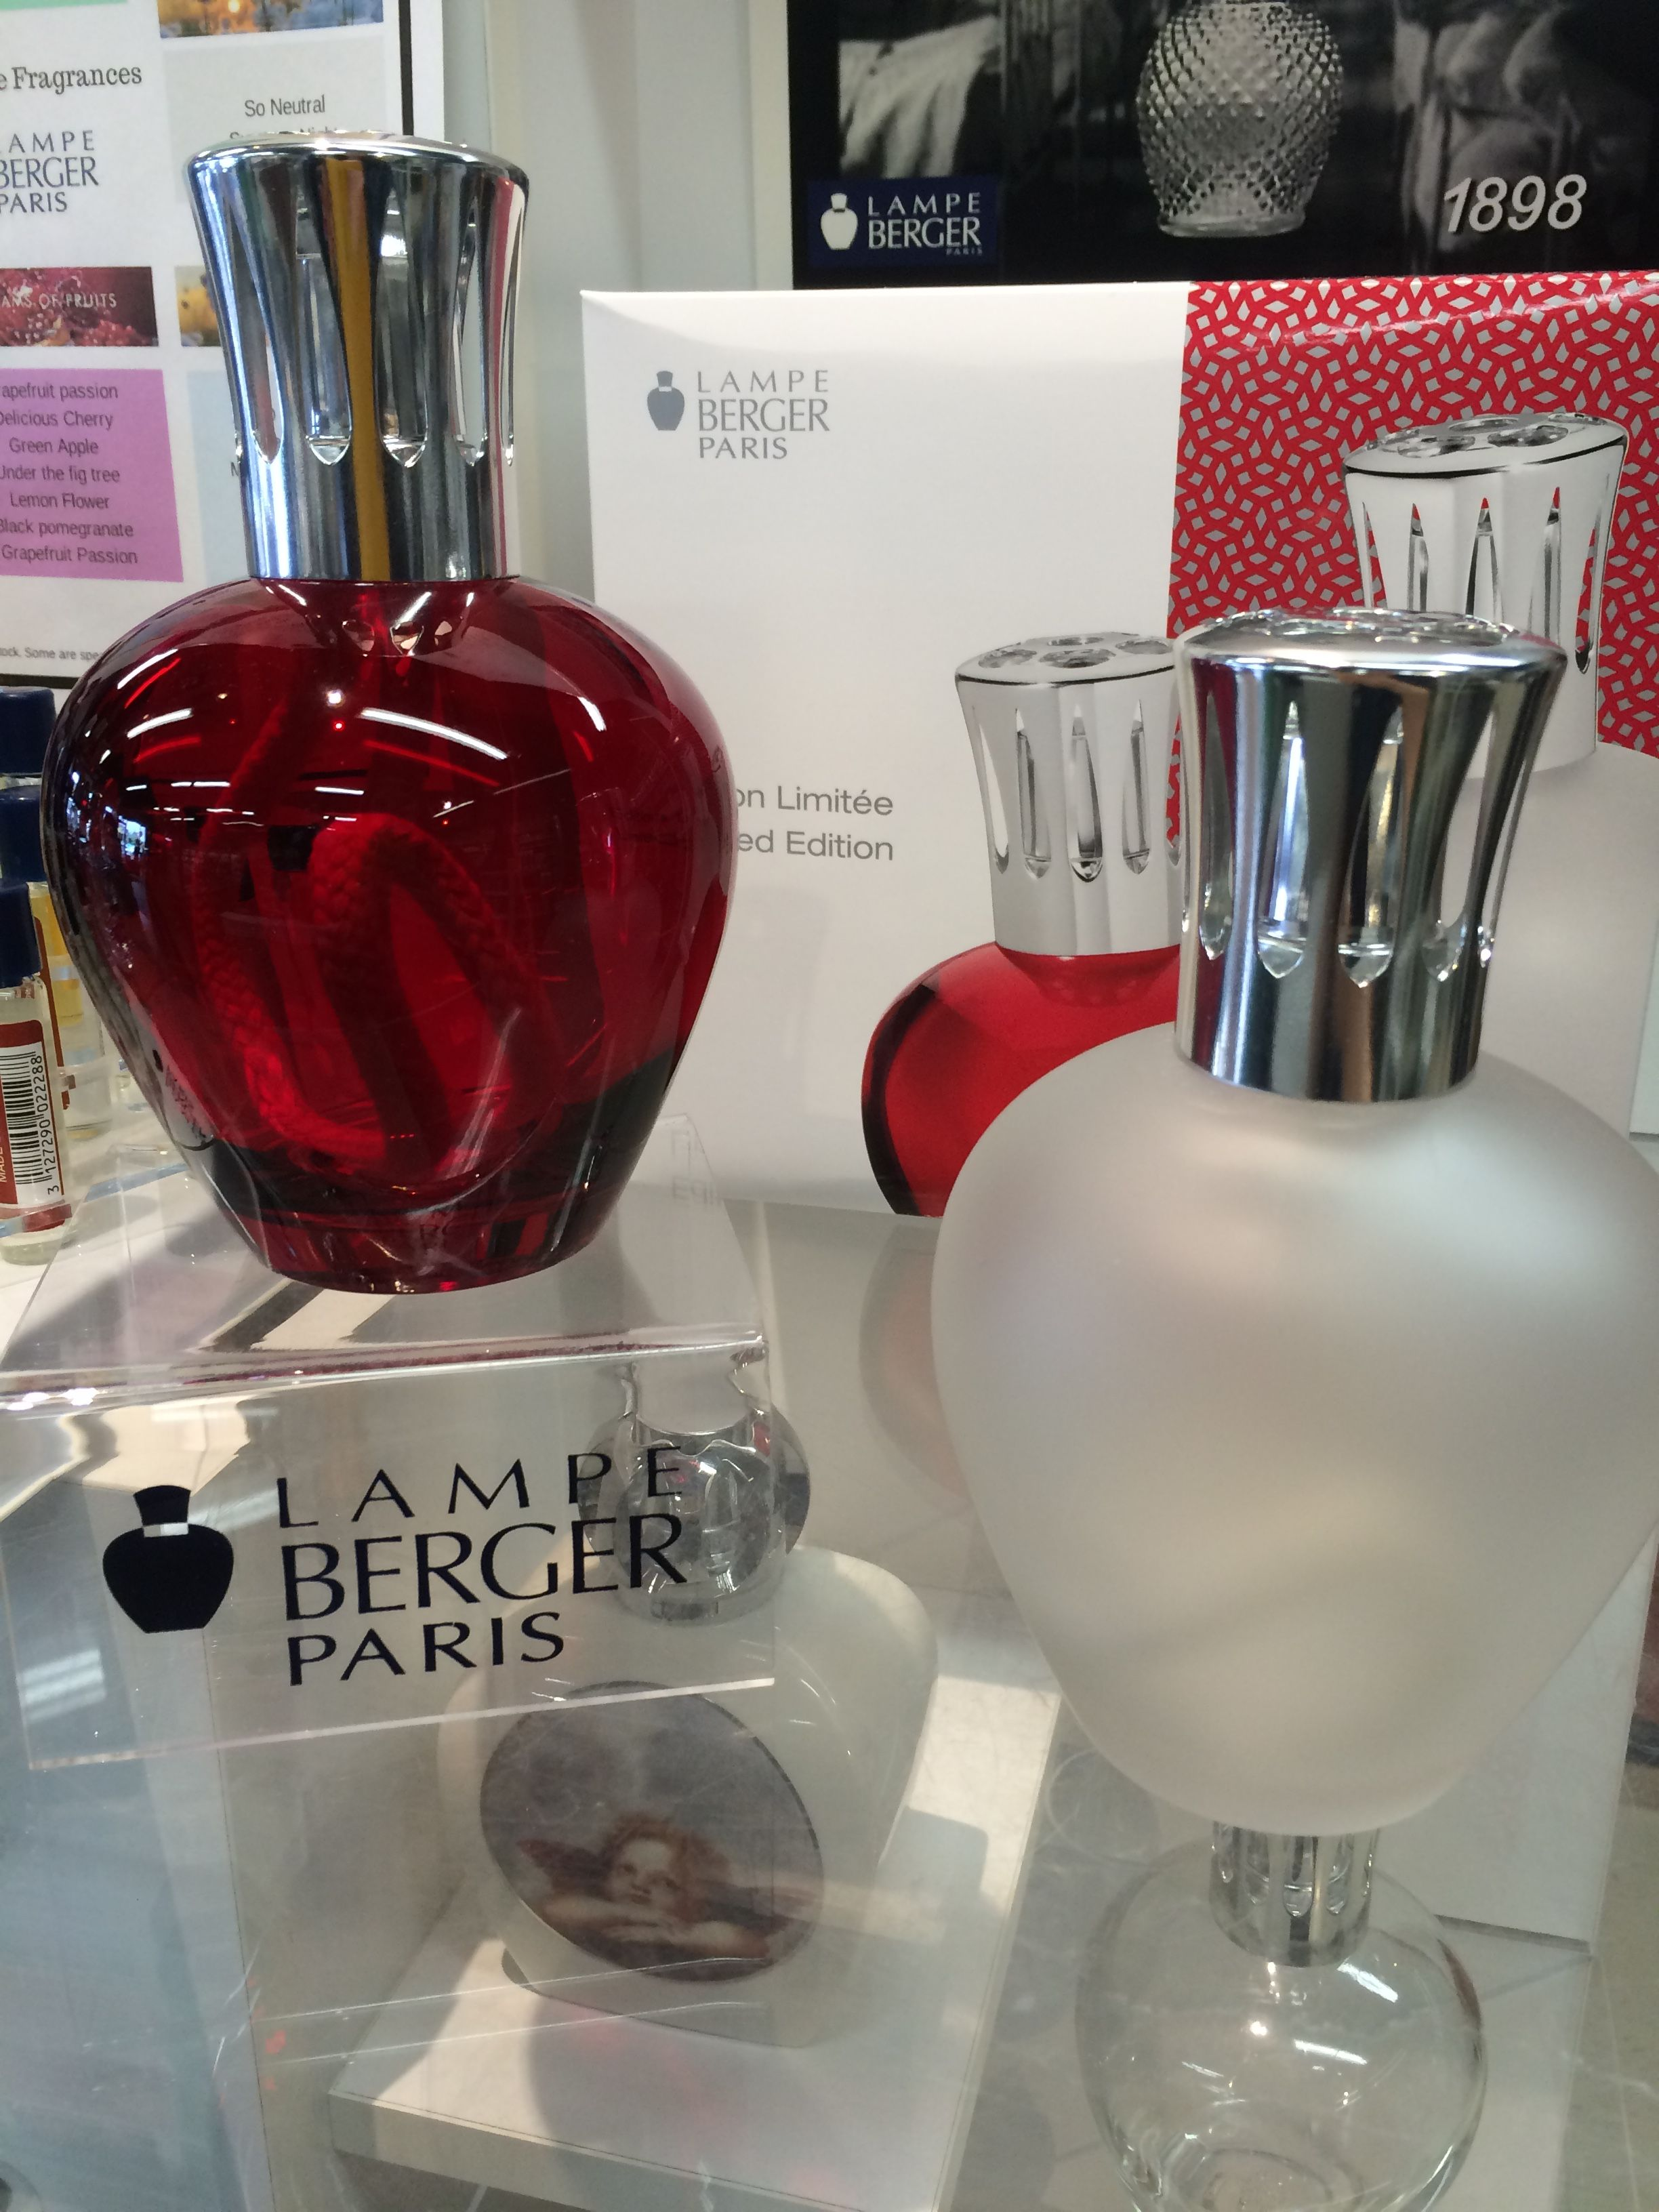 Red Apple Lampe Berger Kit And Frosted Apple Lampe Berger Kit Kit Includes 1 Lampe 1 Catalytic Burner And 1 Fragrance A Perfume Bottles Red Apple Fragrance